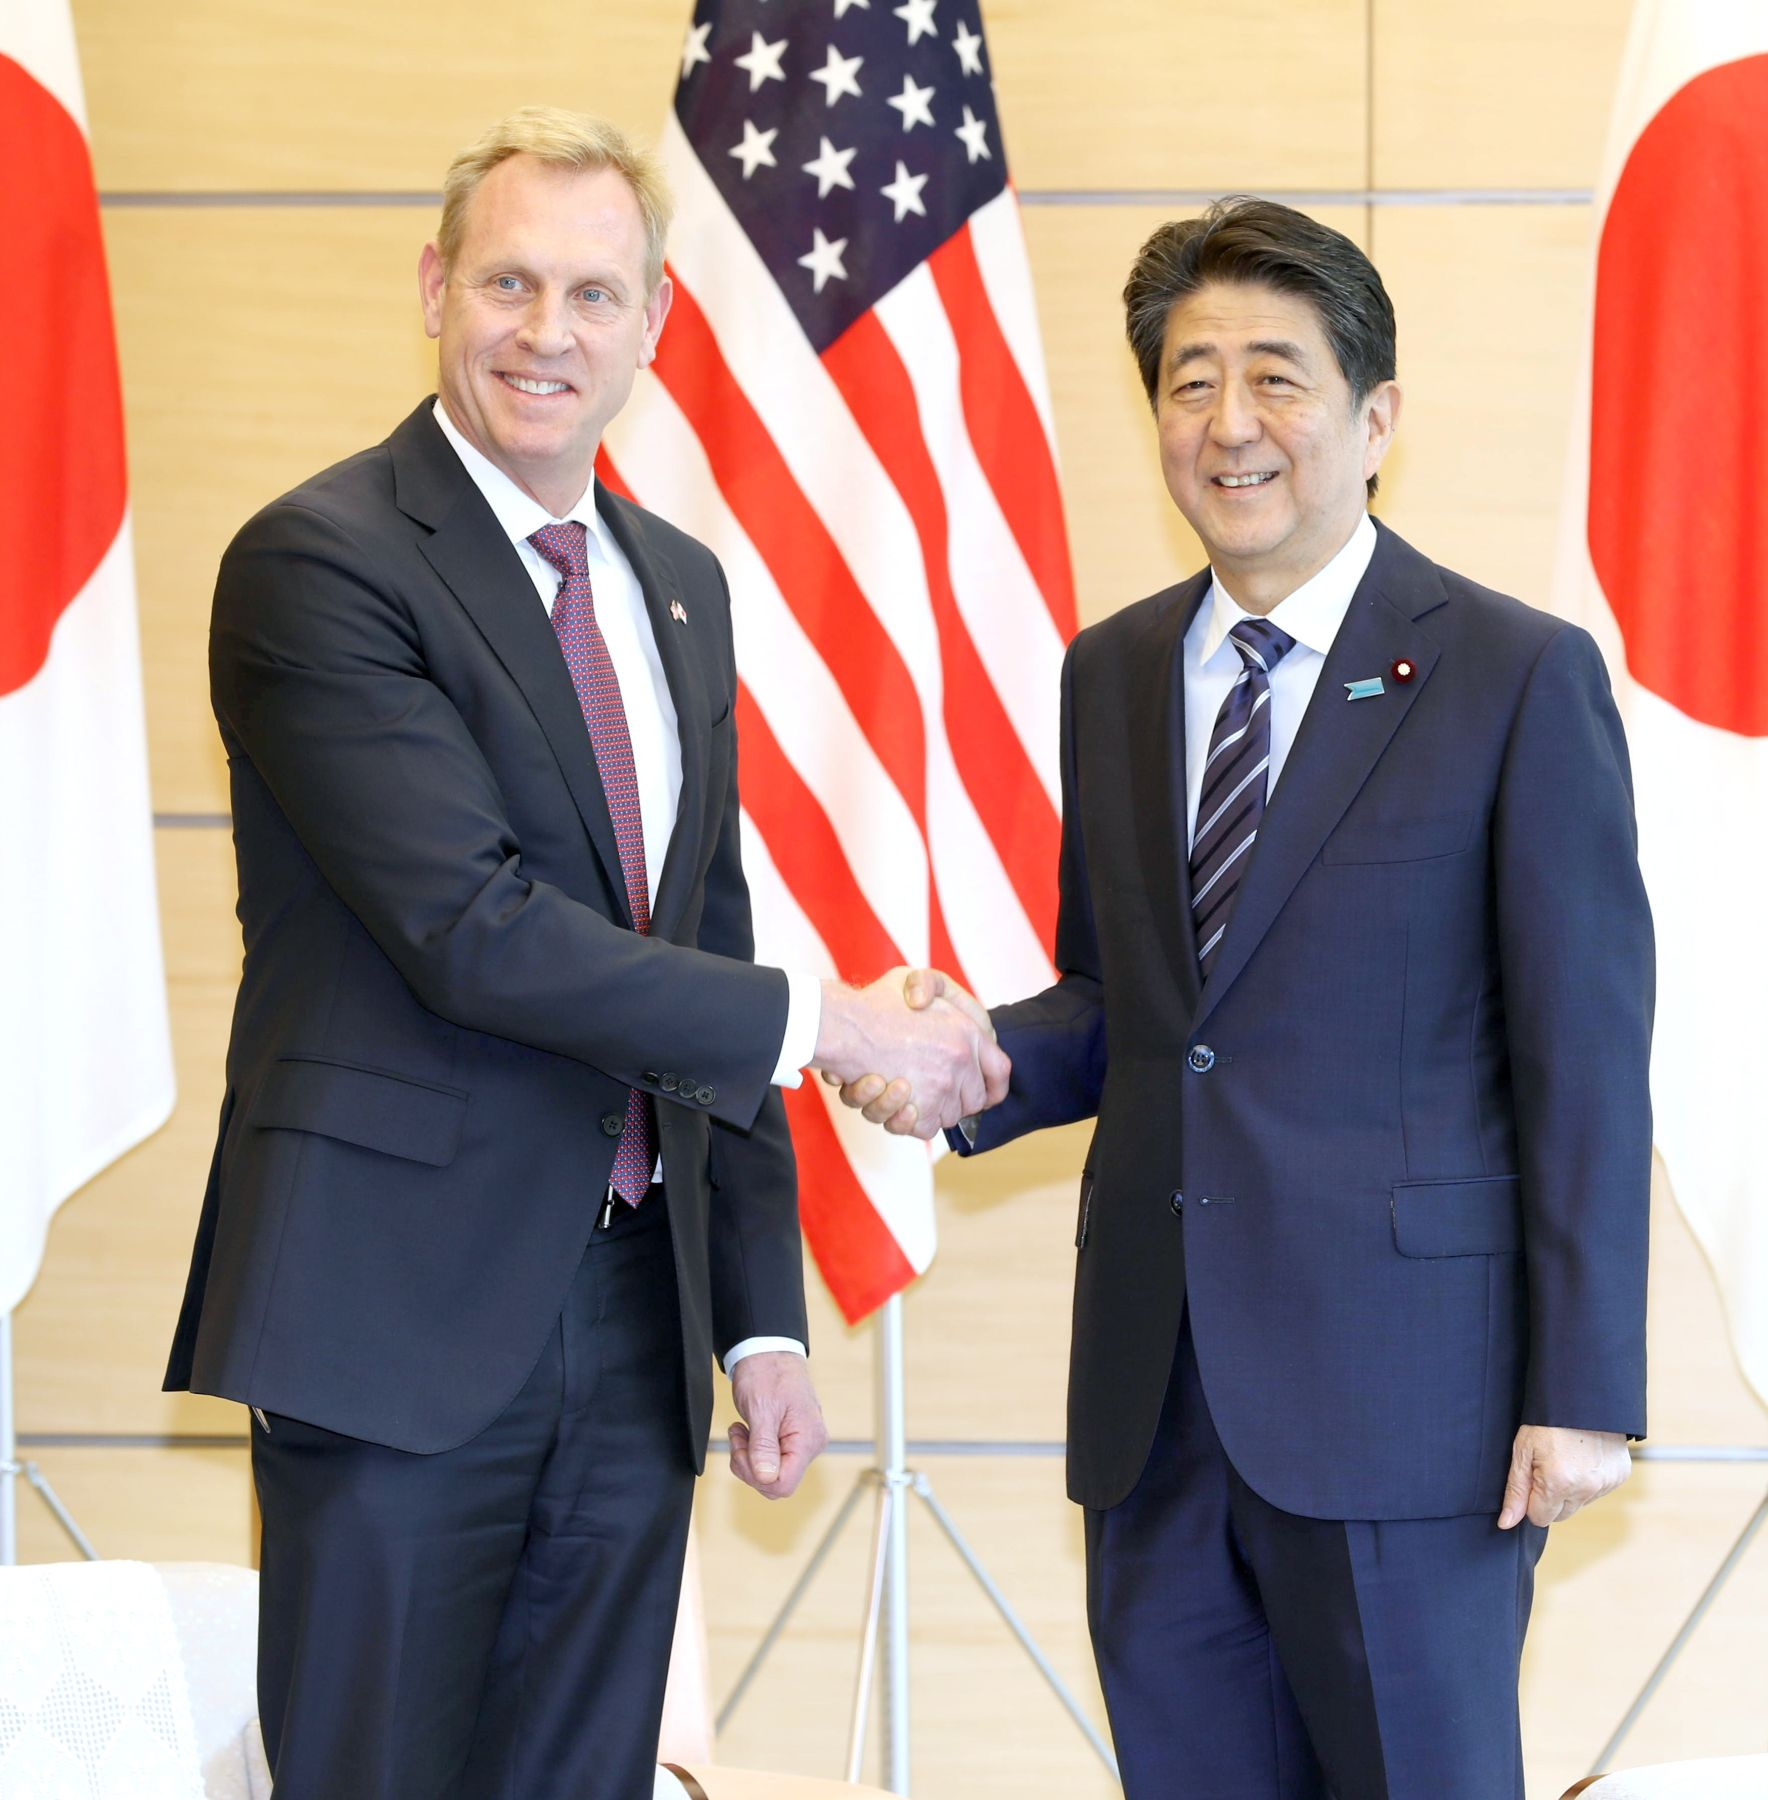 Patrick Shanahan announced the US Indo-Pacific Strategy at Singapore 001